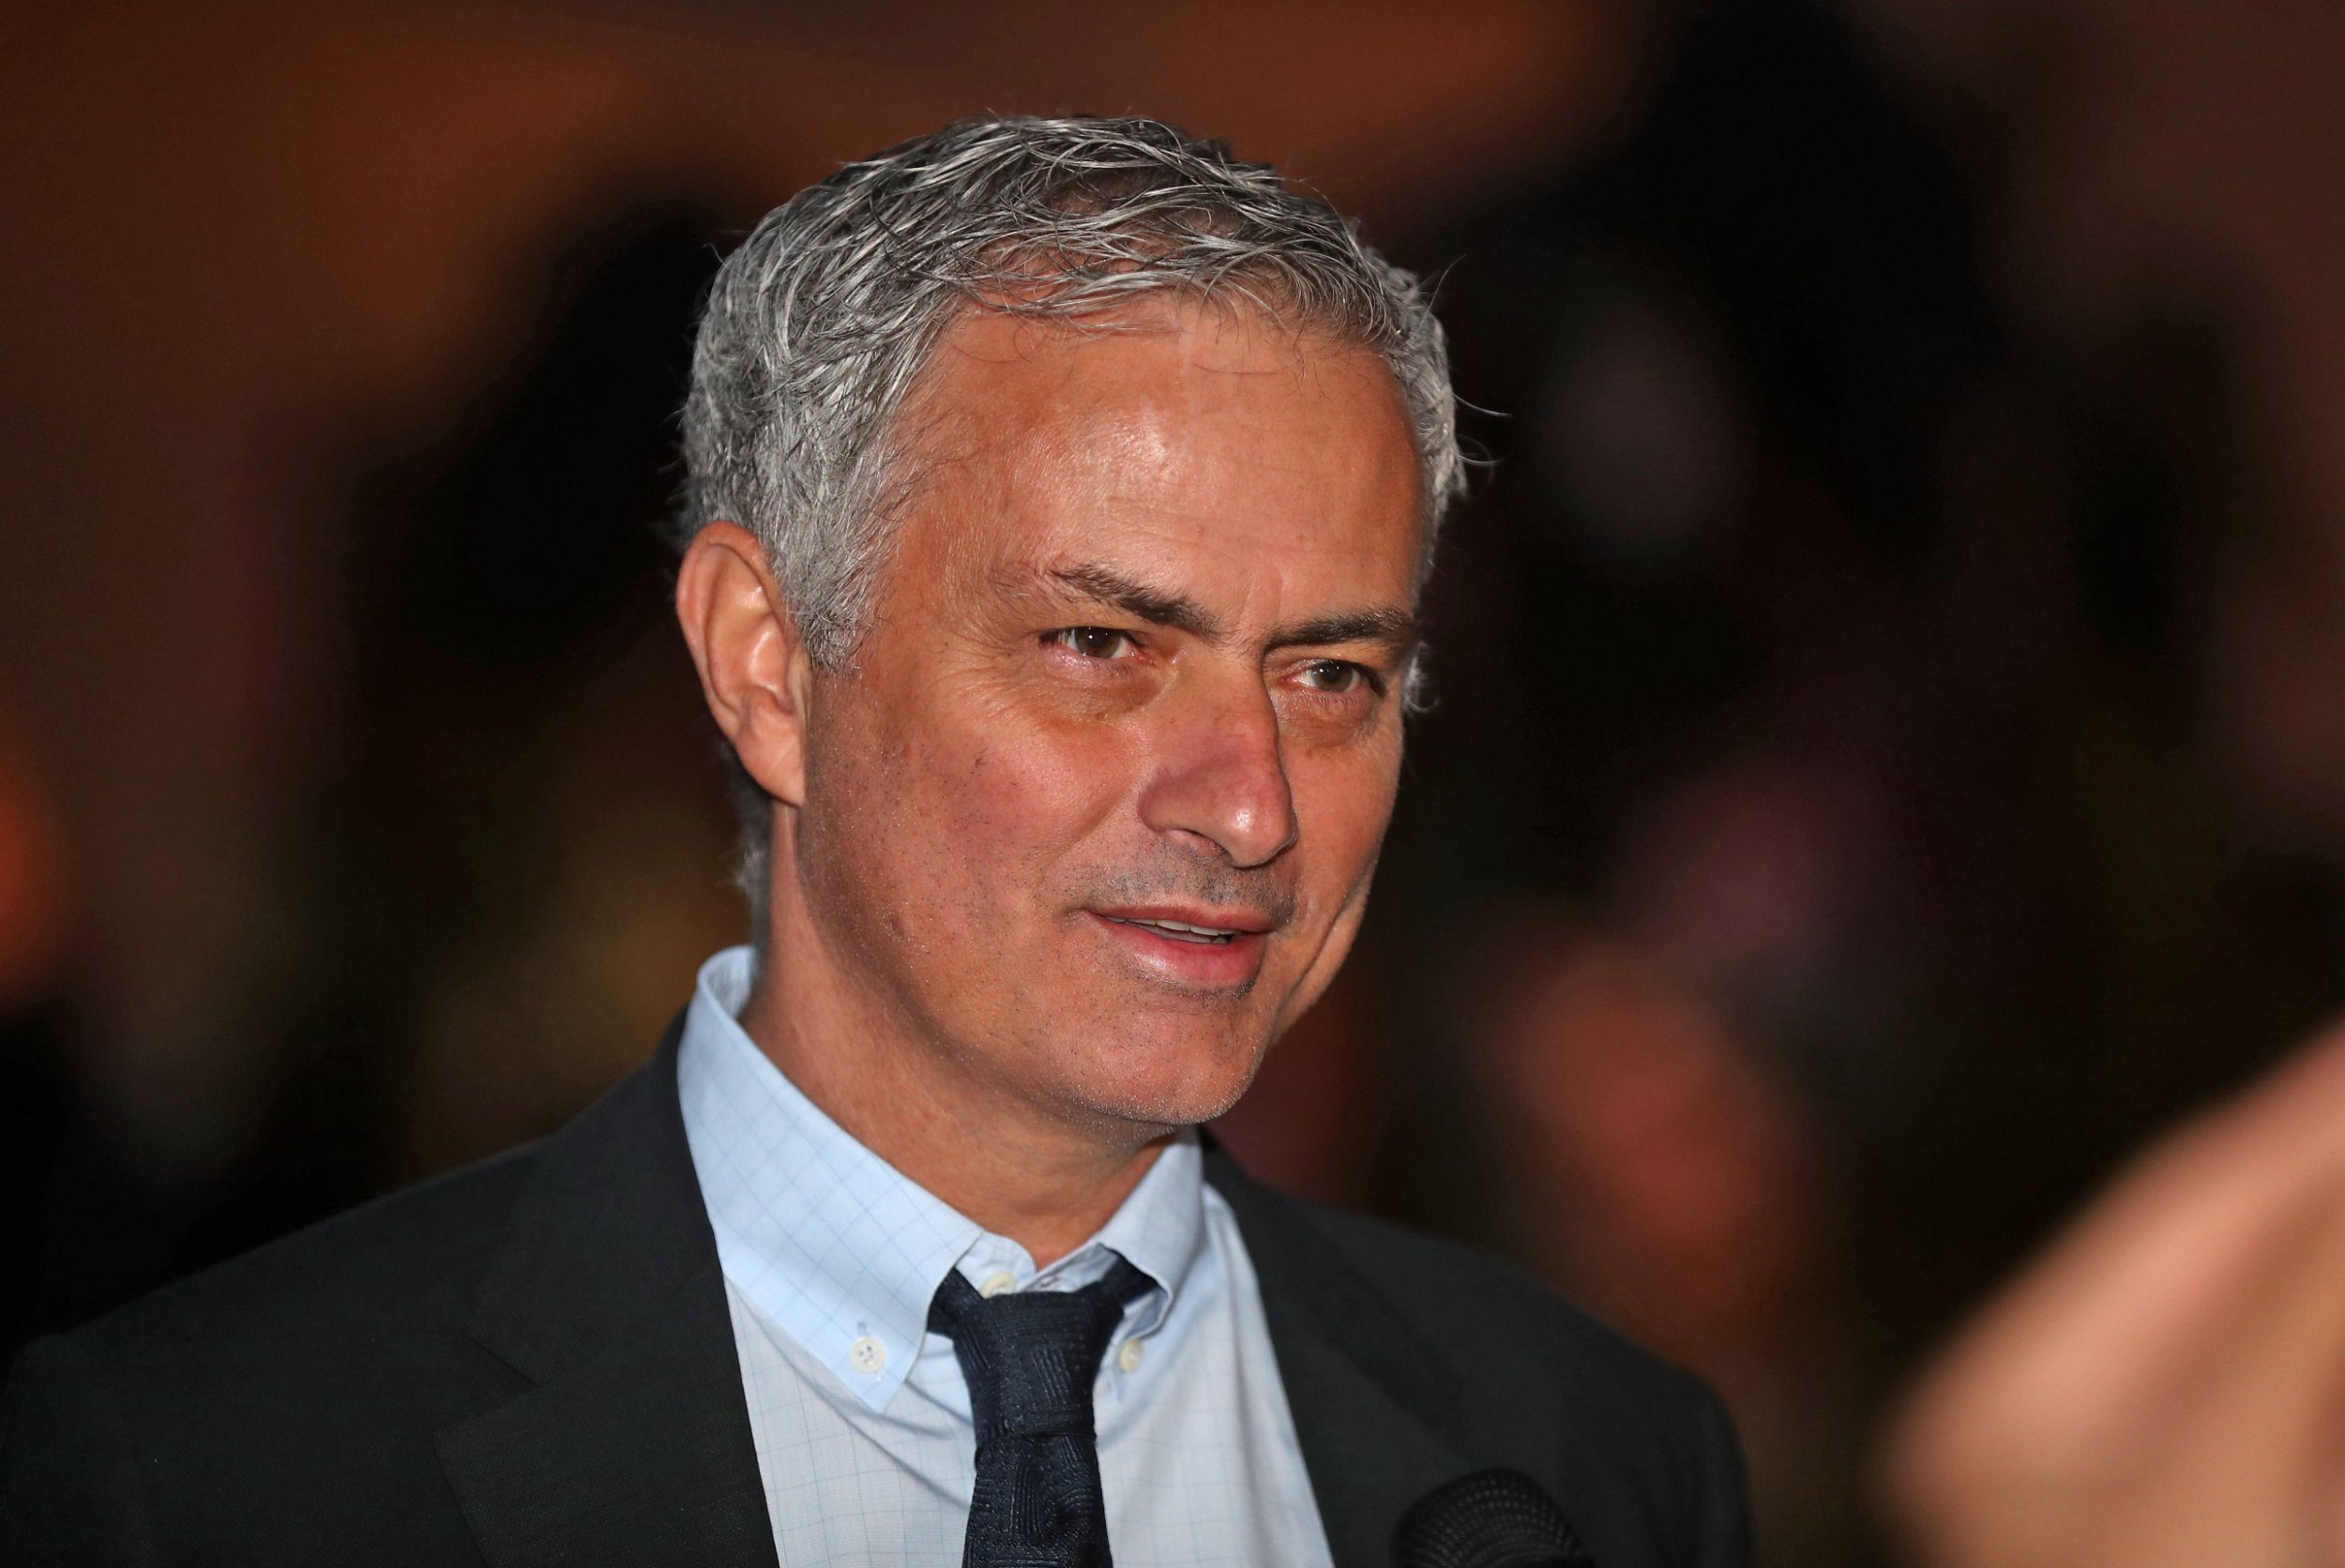 Jose Mourinho aims dig at Manchester United player for asking to drive his Rolls Royce after a game